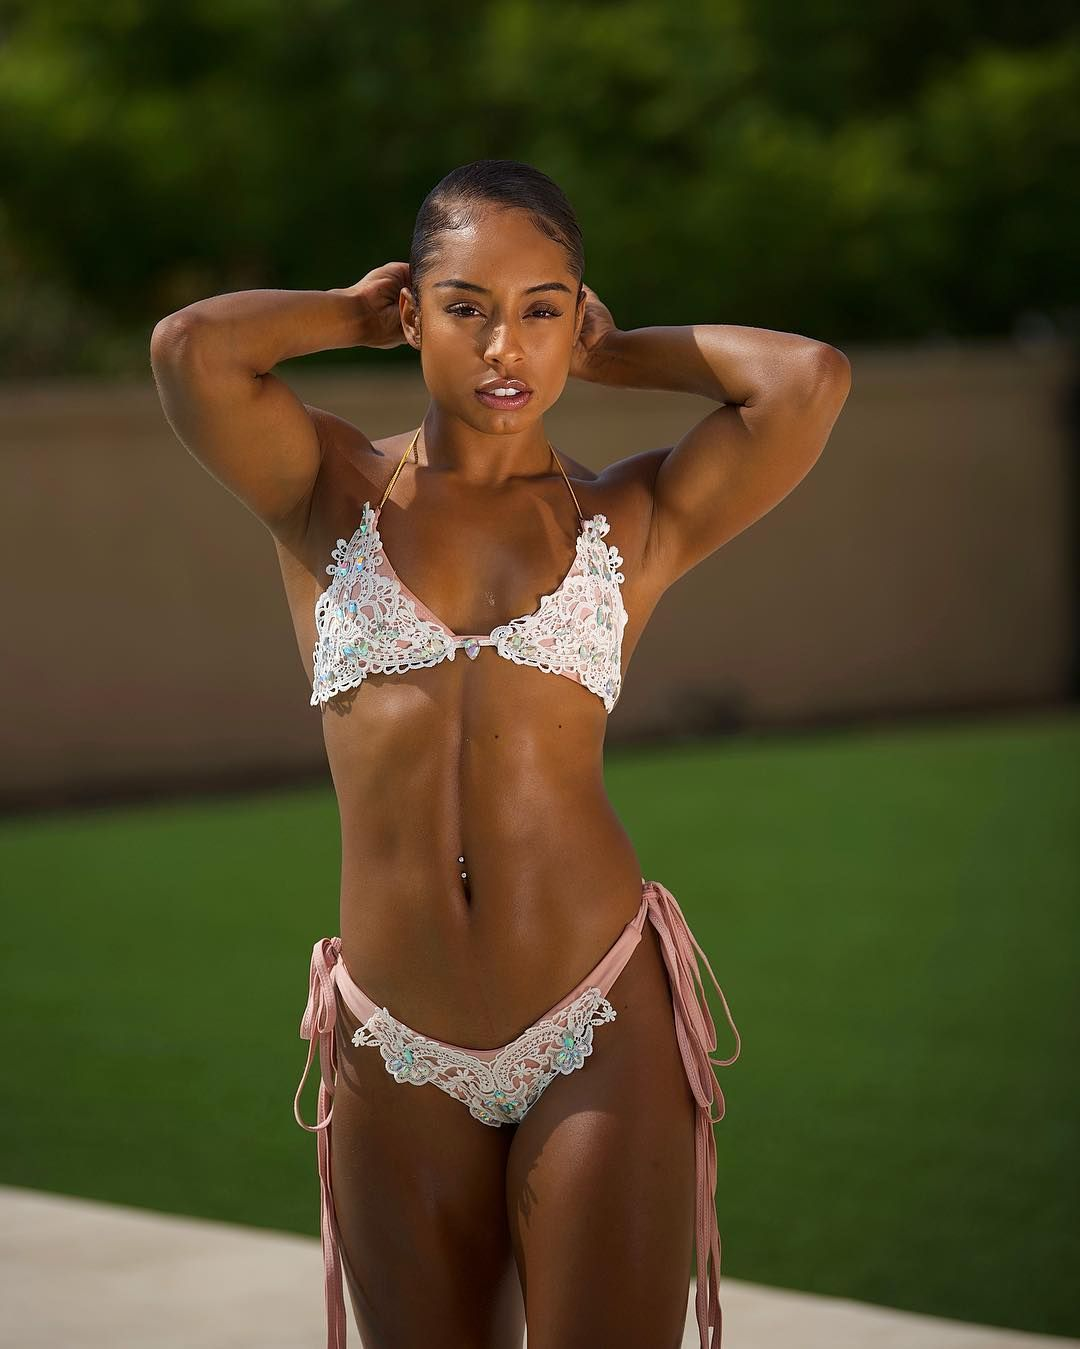 Video Qimmah Russo naked (31 photos), Ass, Bikini, Feet, underwear 2018